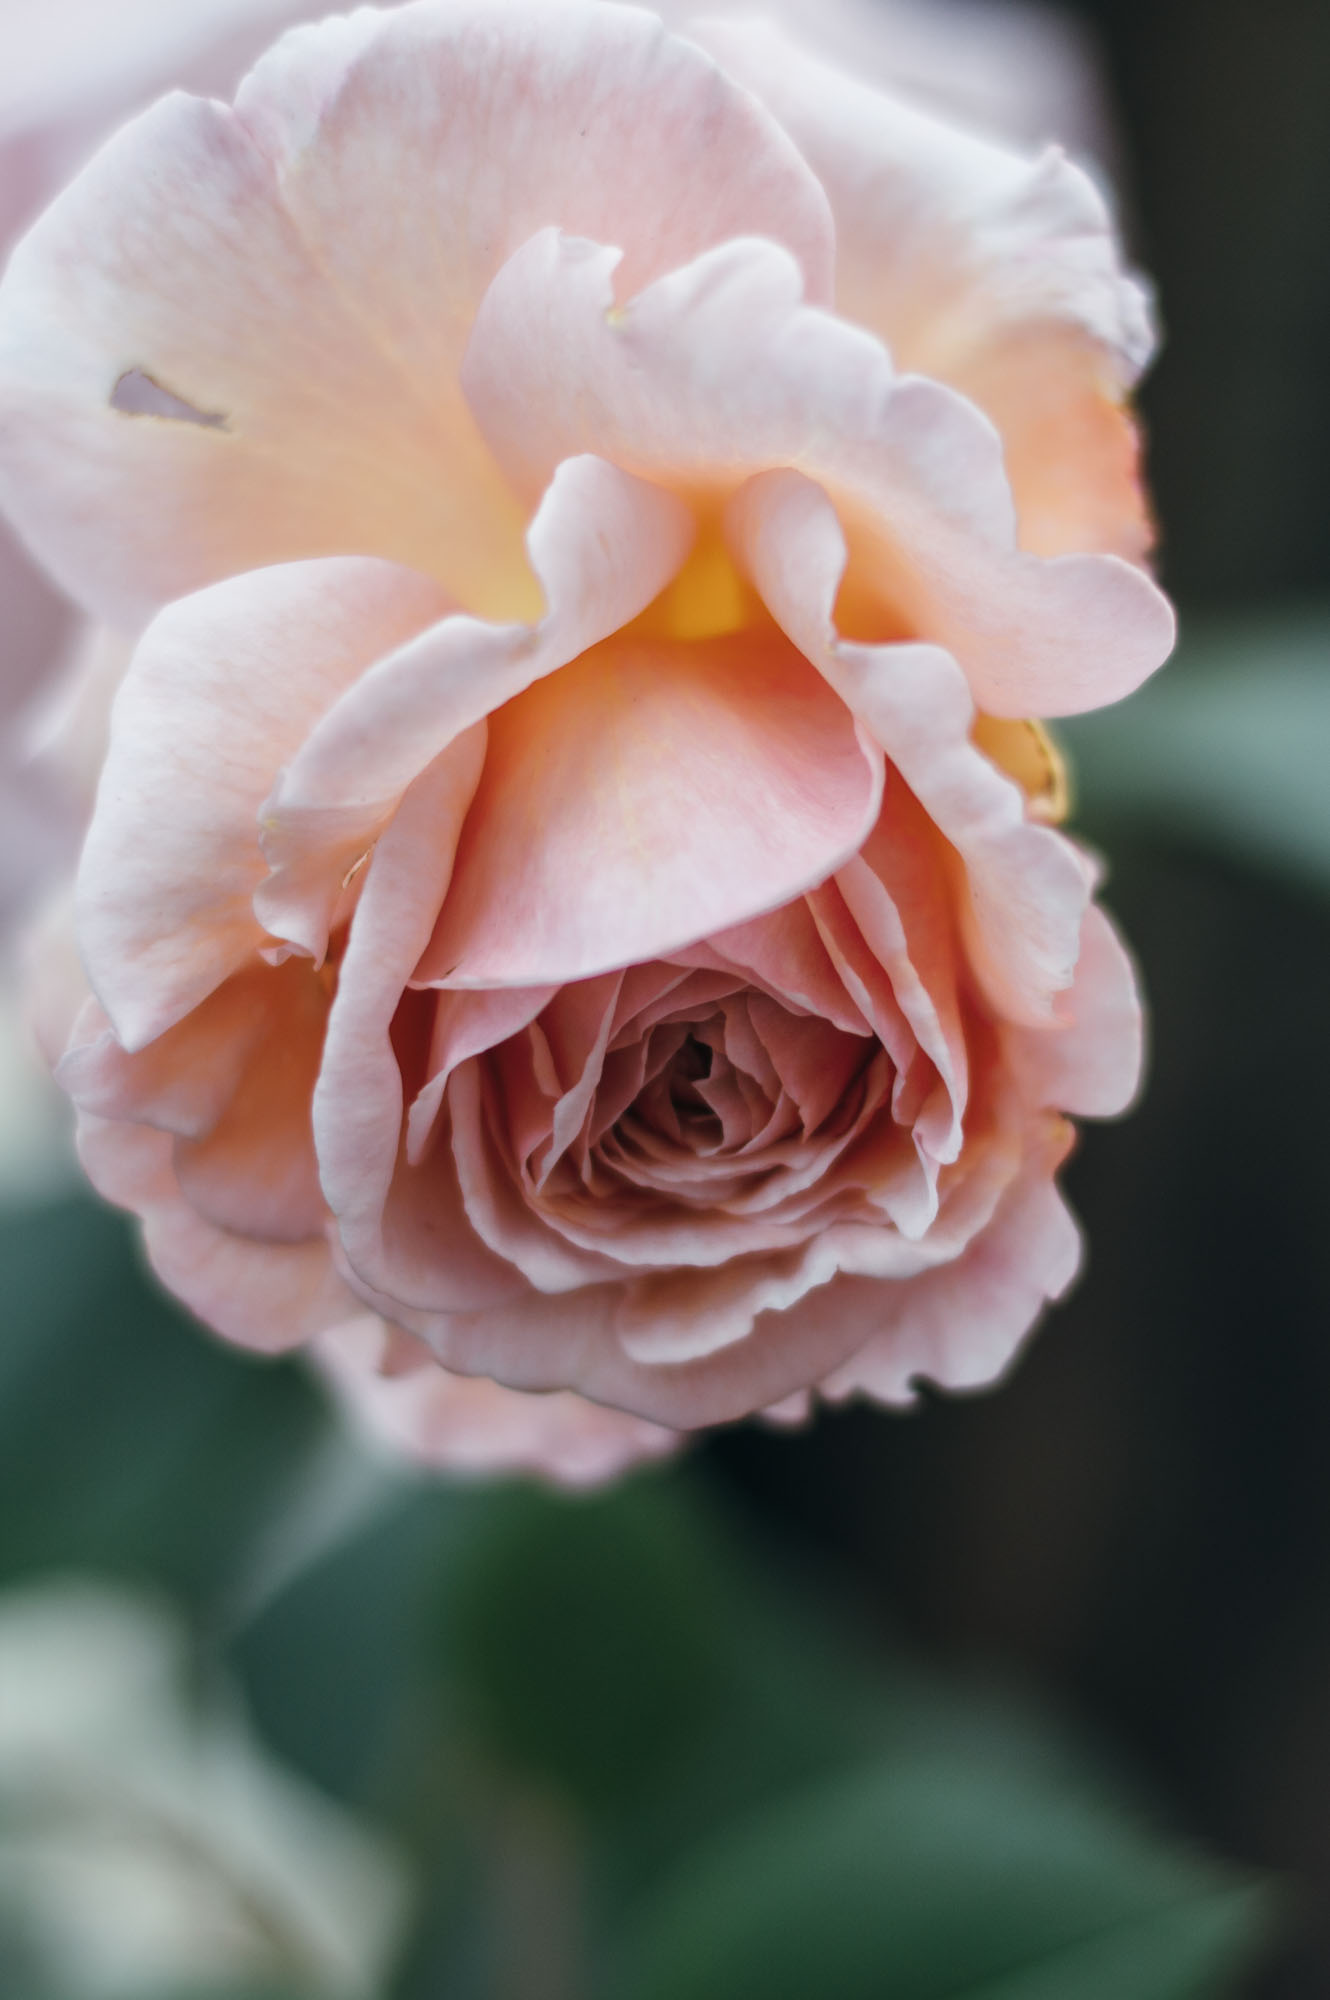 B&Q garden makeover rose #makeanentrance campaign